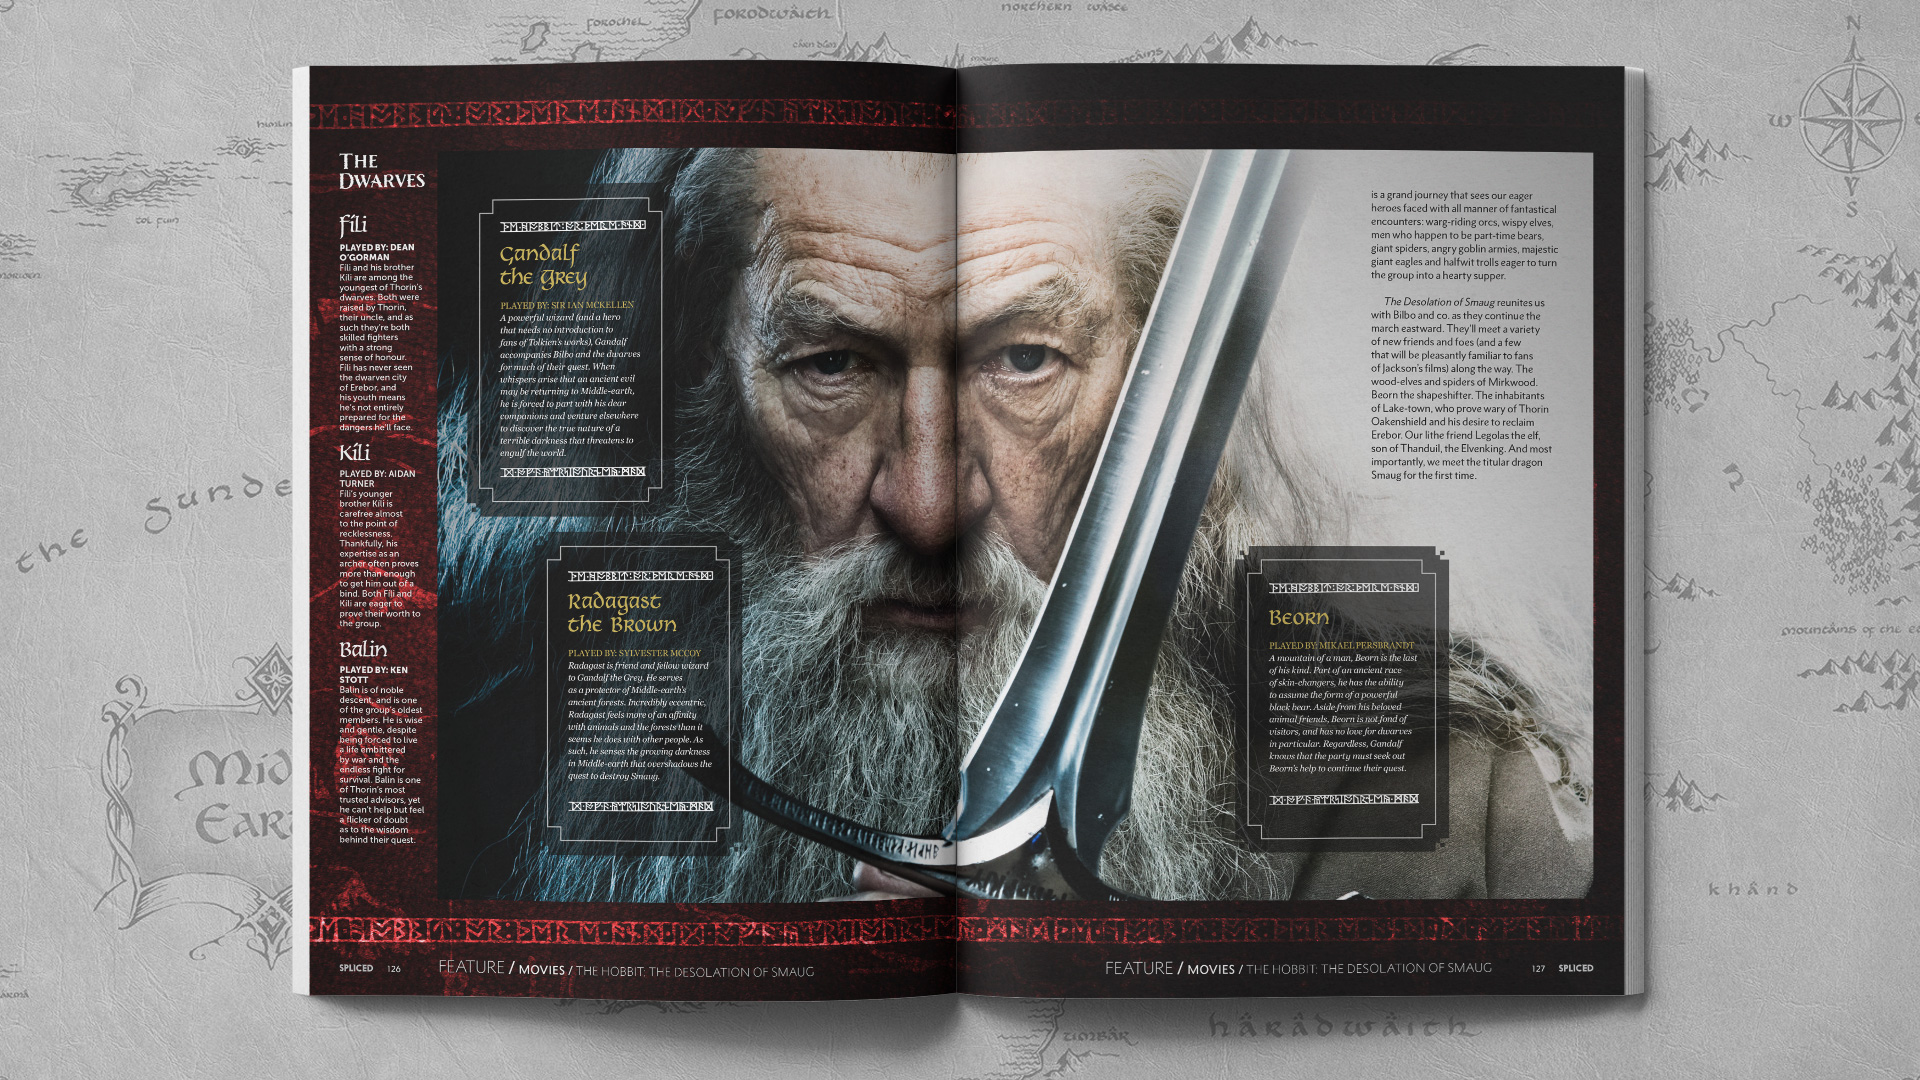 Spliced magazine layout for The Hobbit in an open magazine layout